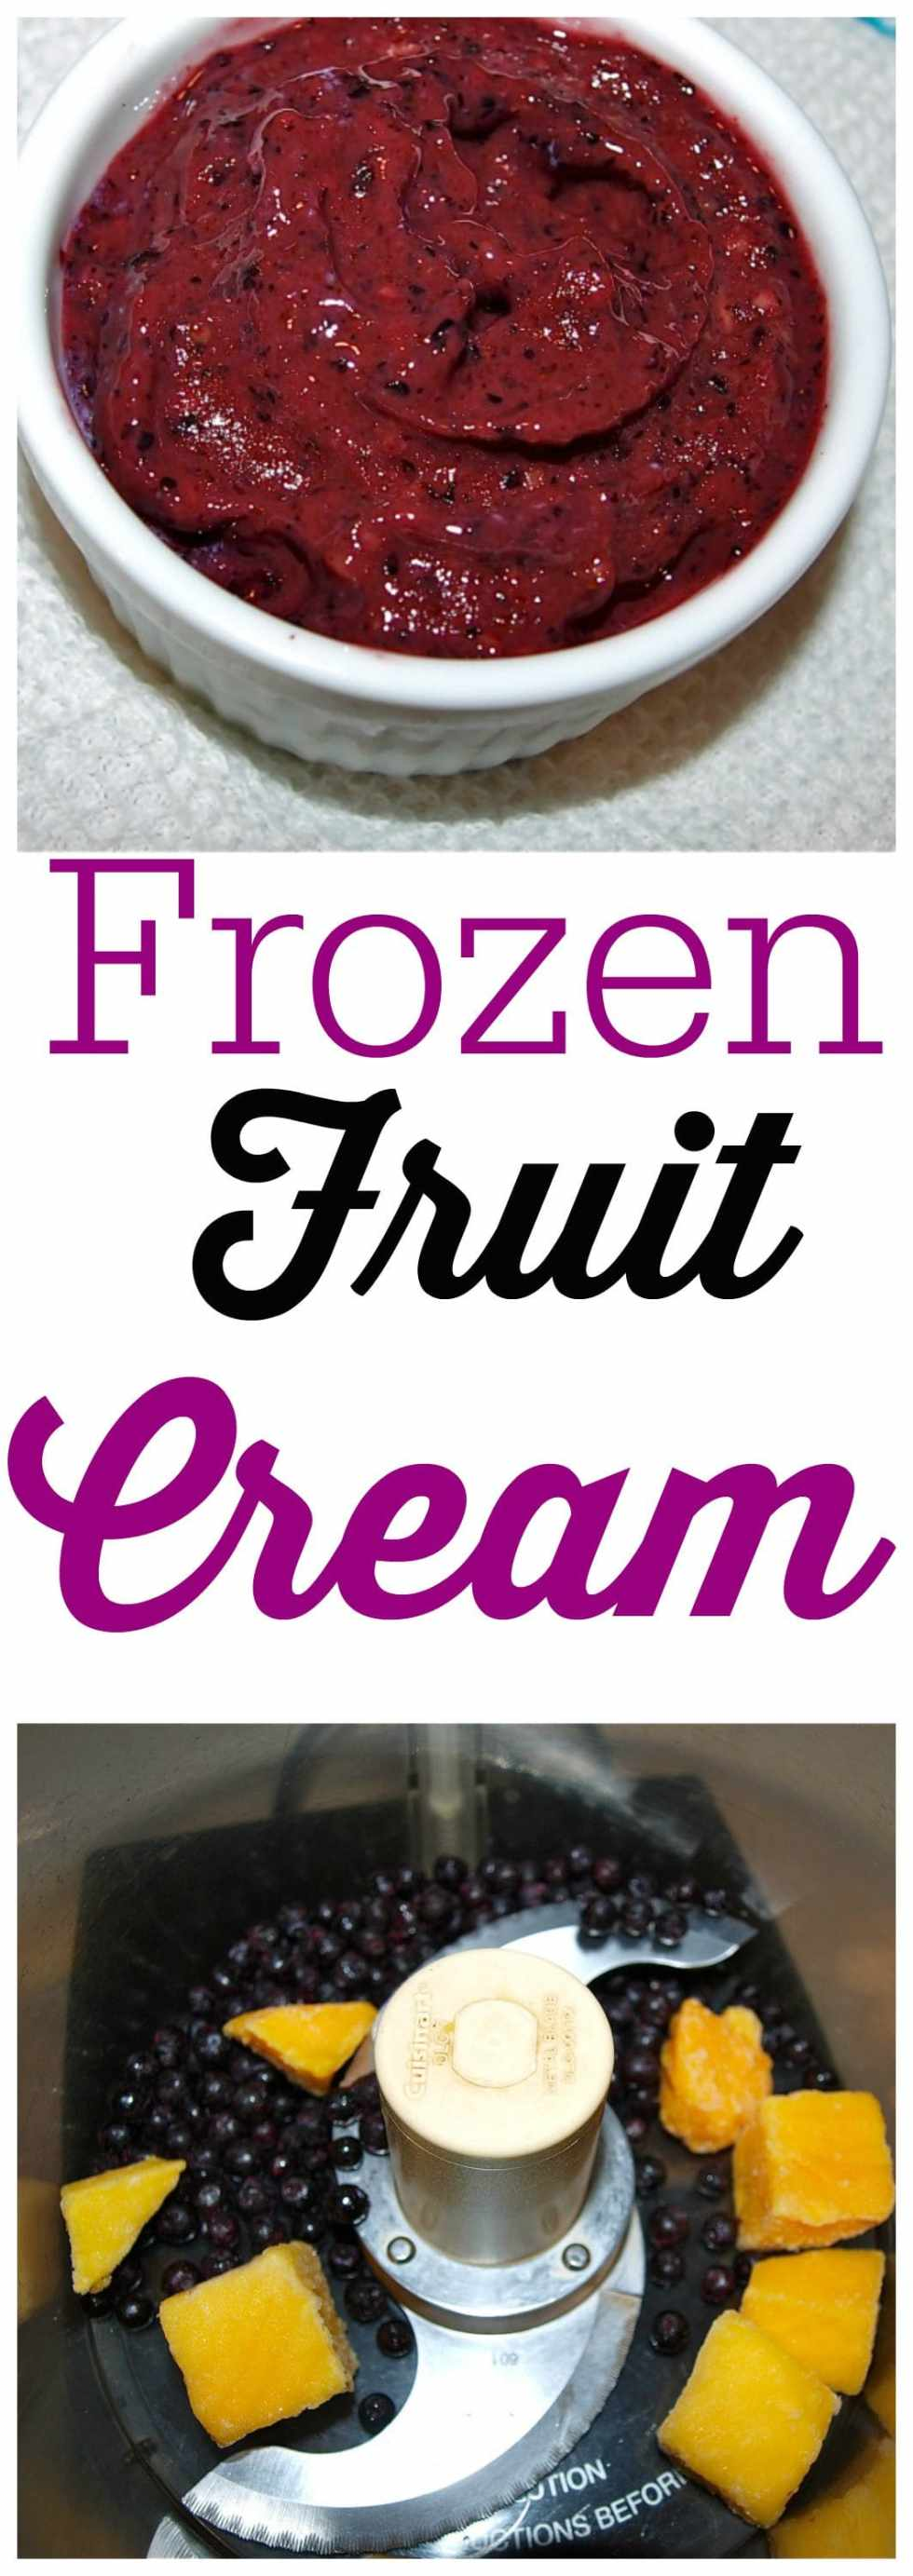 Frozen Fruit Cream recipe! You won't miss the dairy in this healthy ice cream alternative. Such a great sweet and healthy treat!